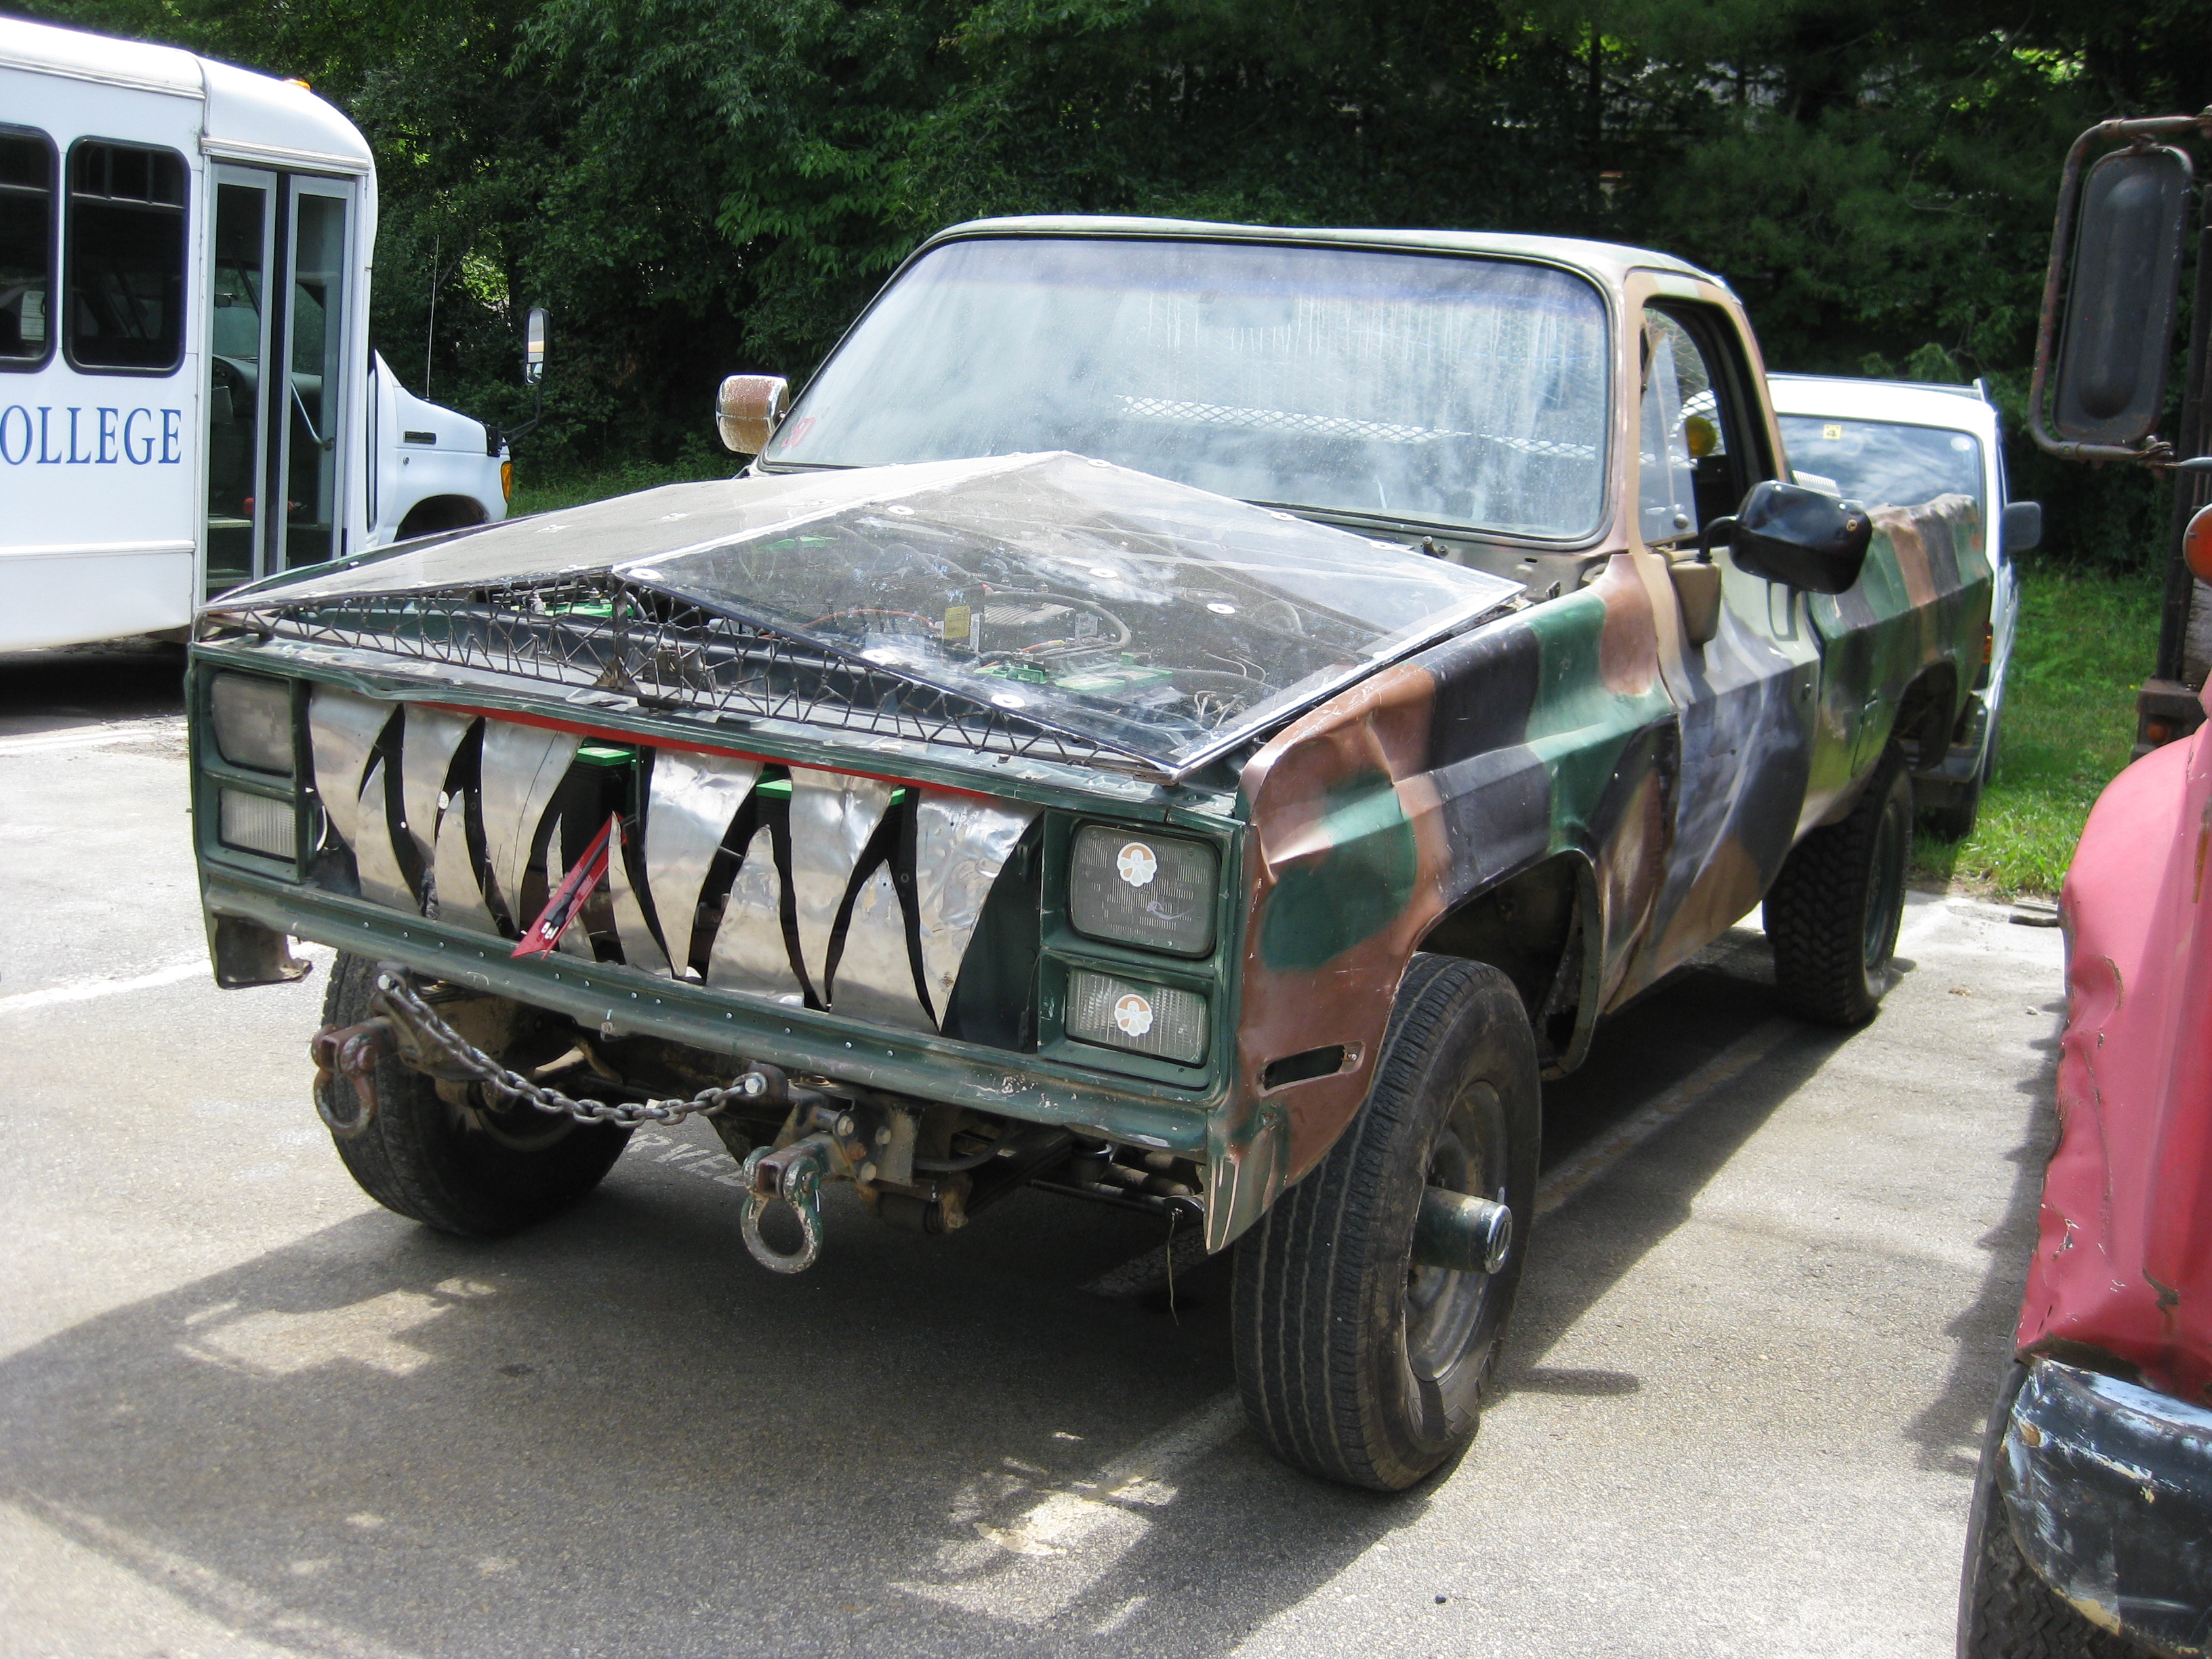 A beat down truck with fake teeth